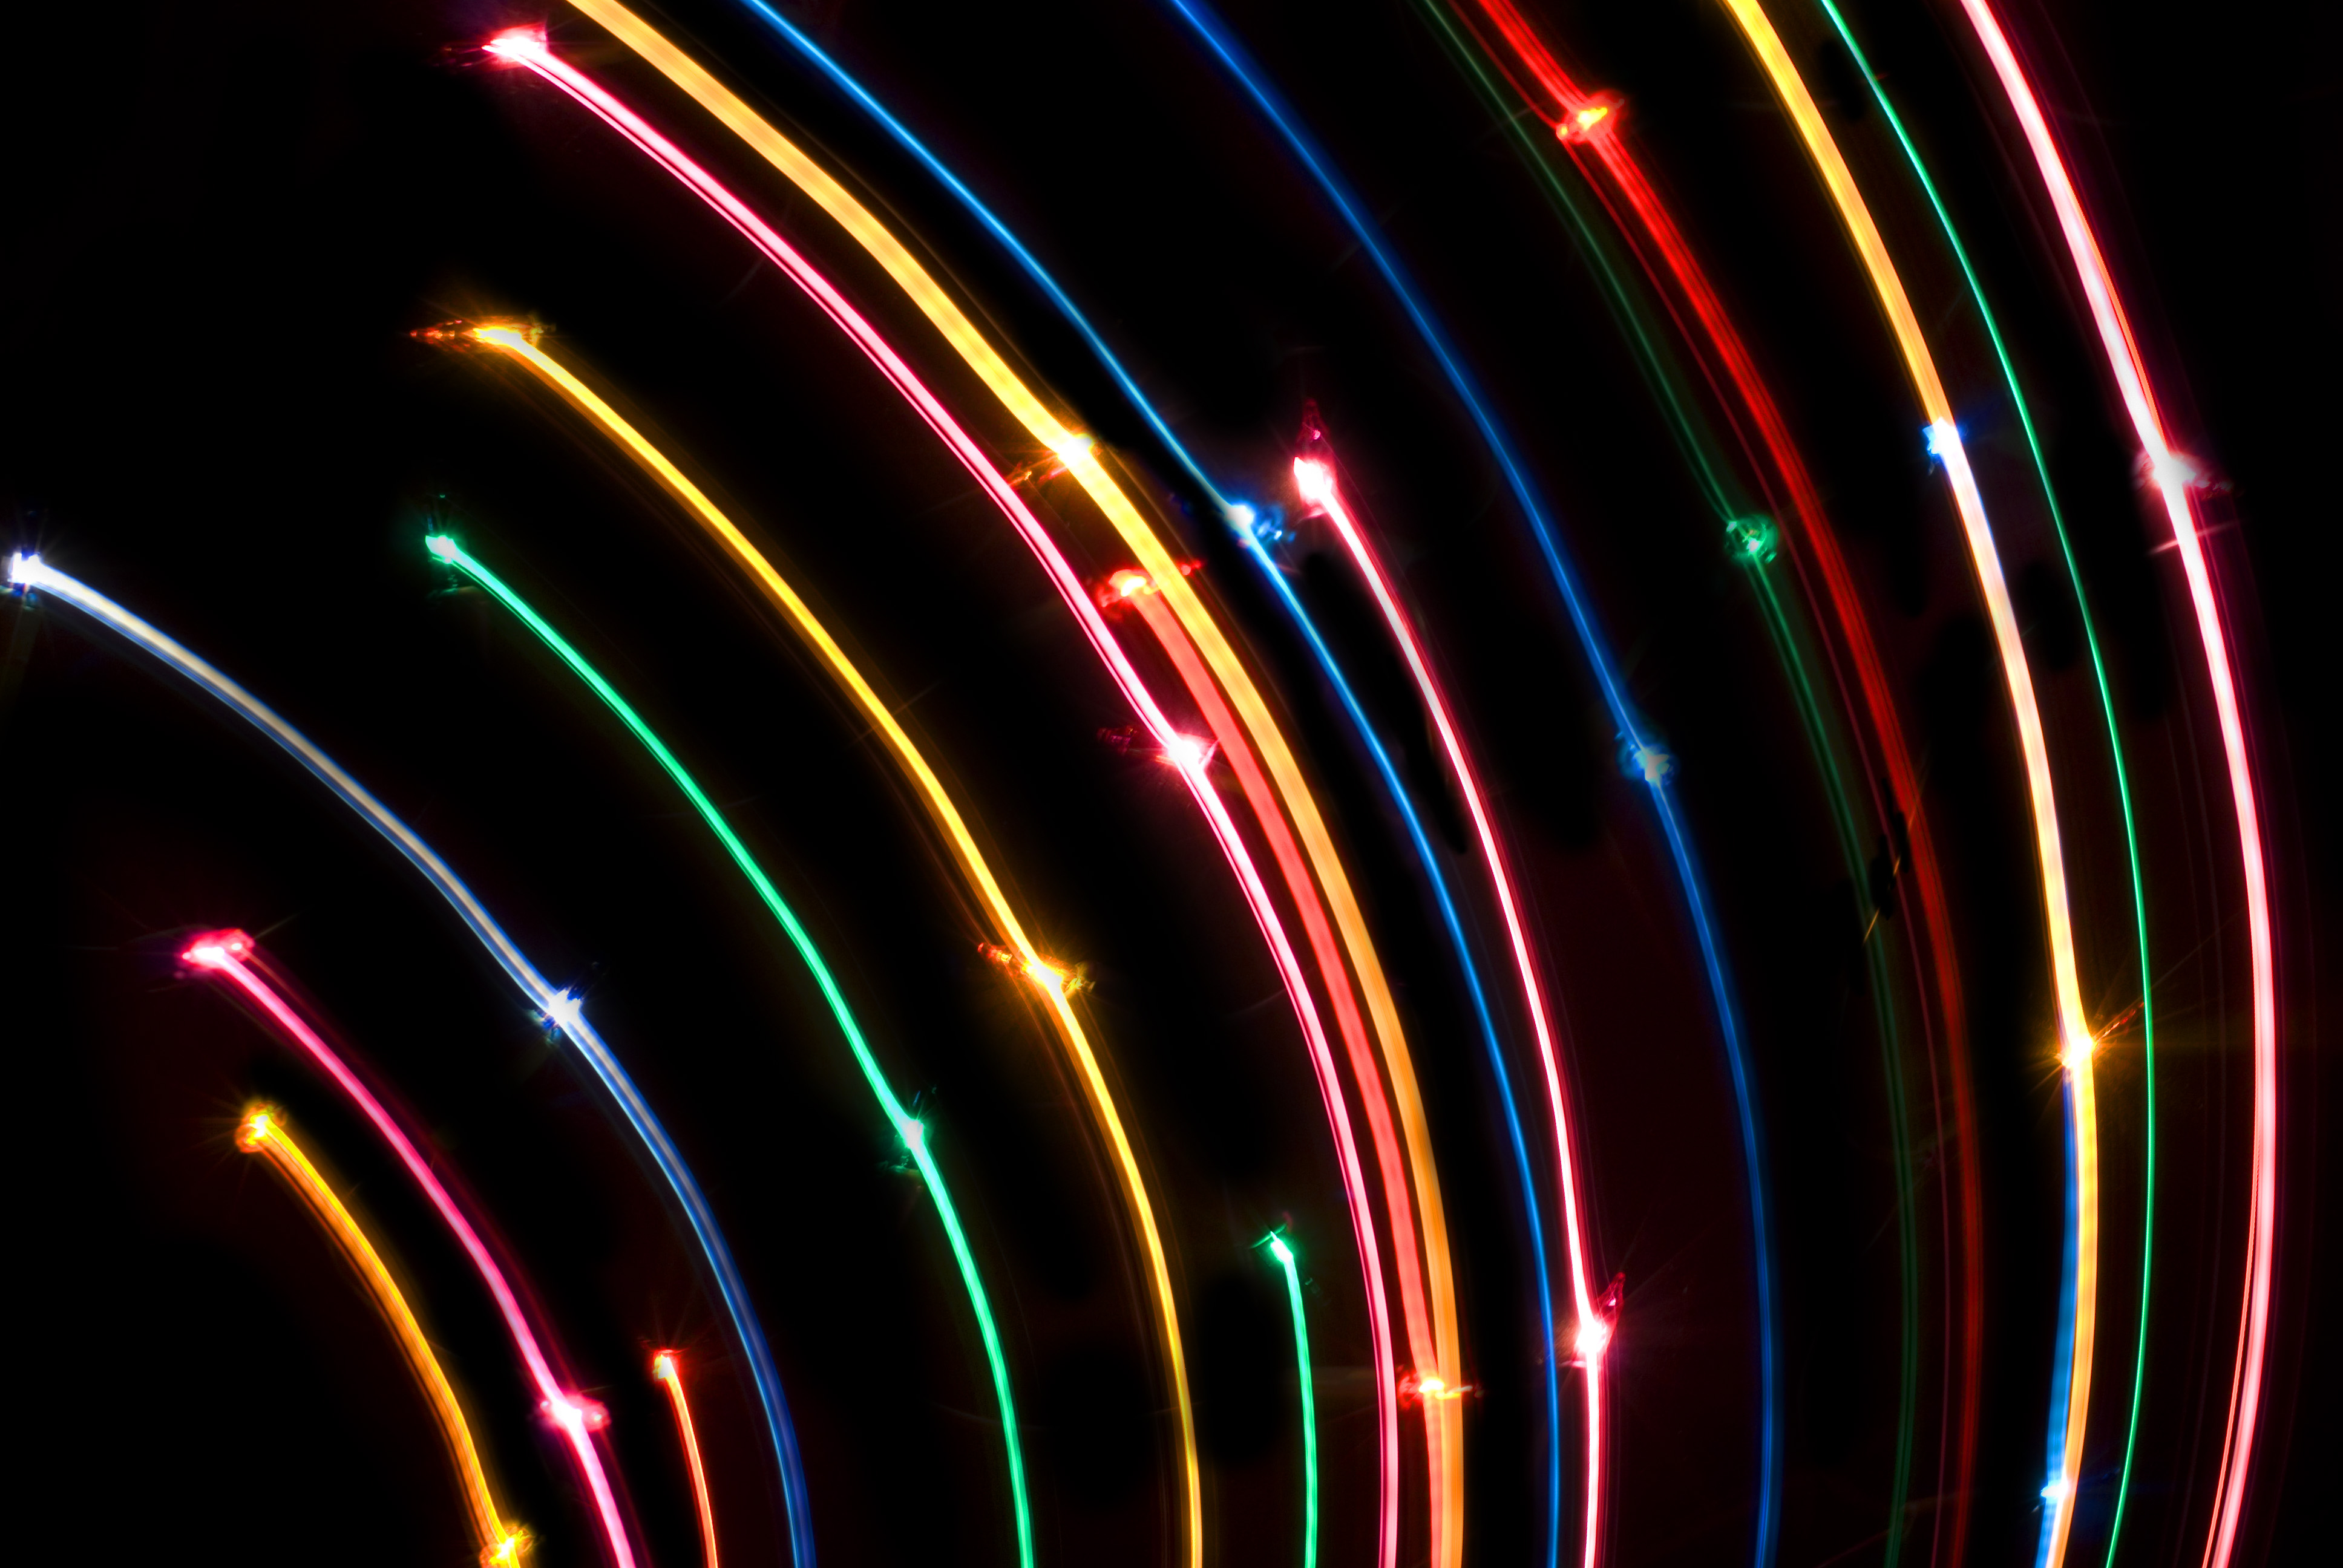 abstract lights | Free backgrounds and textures | Cr103.com